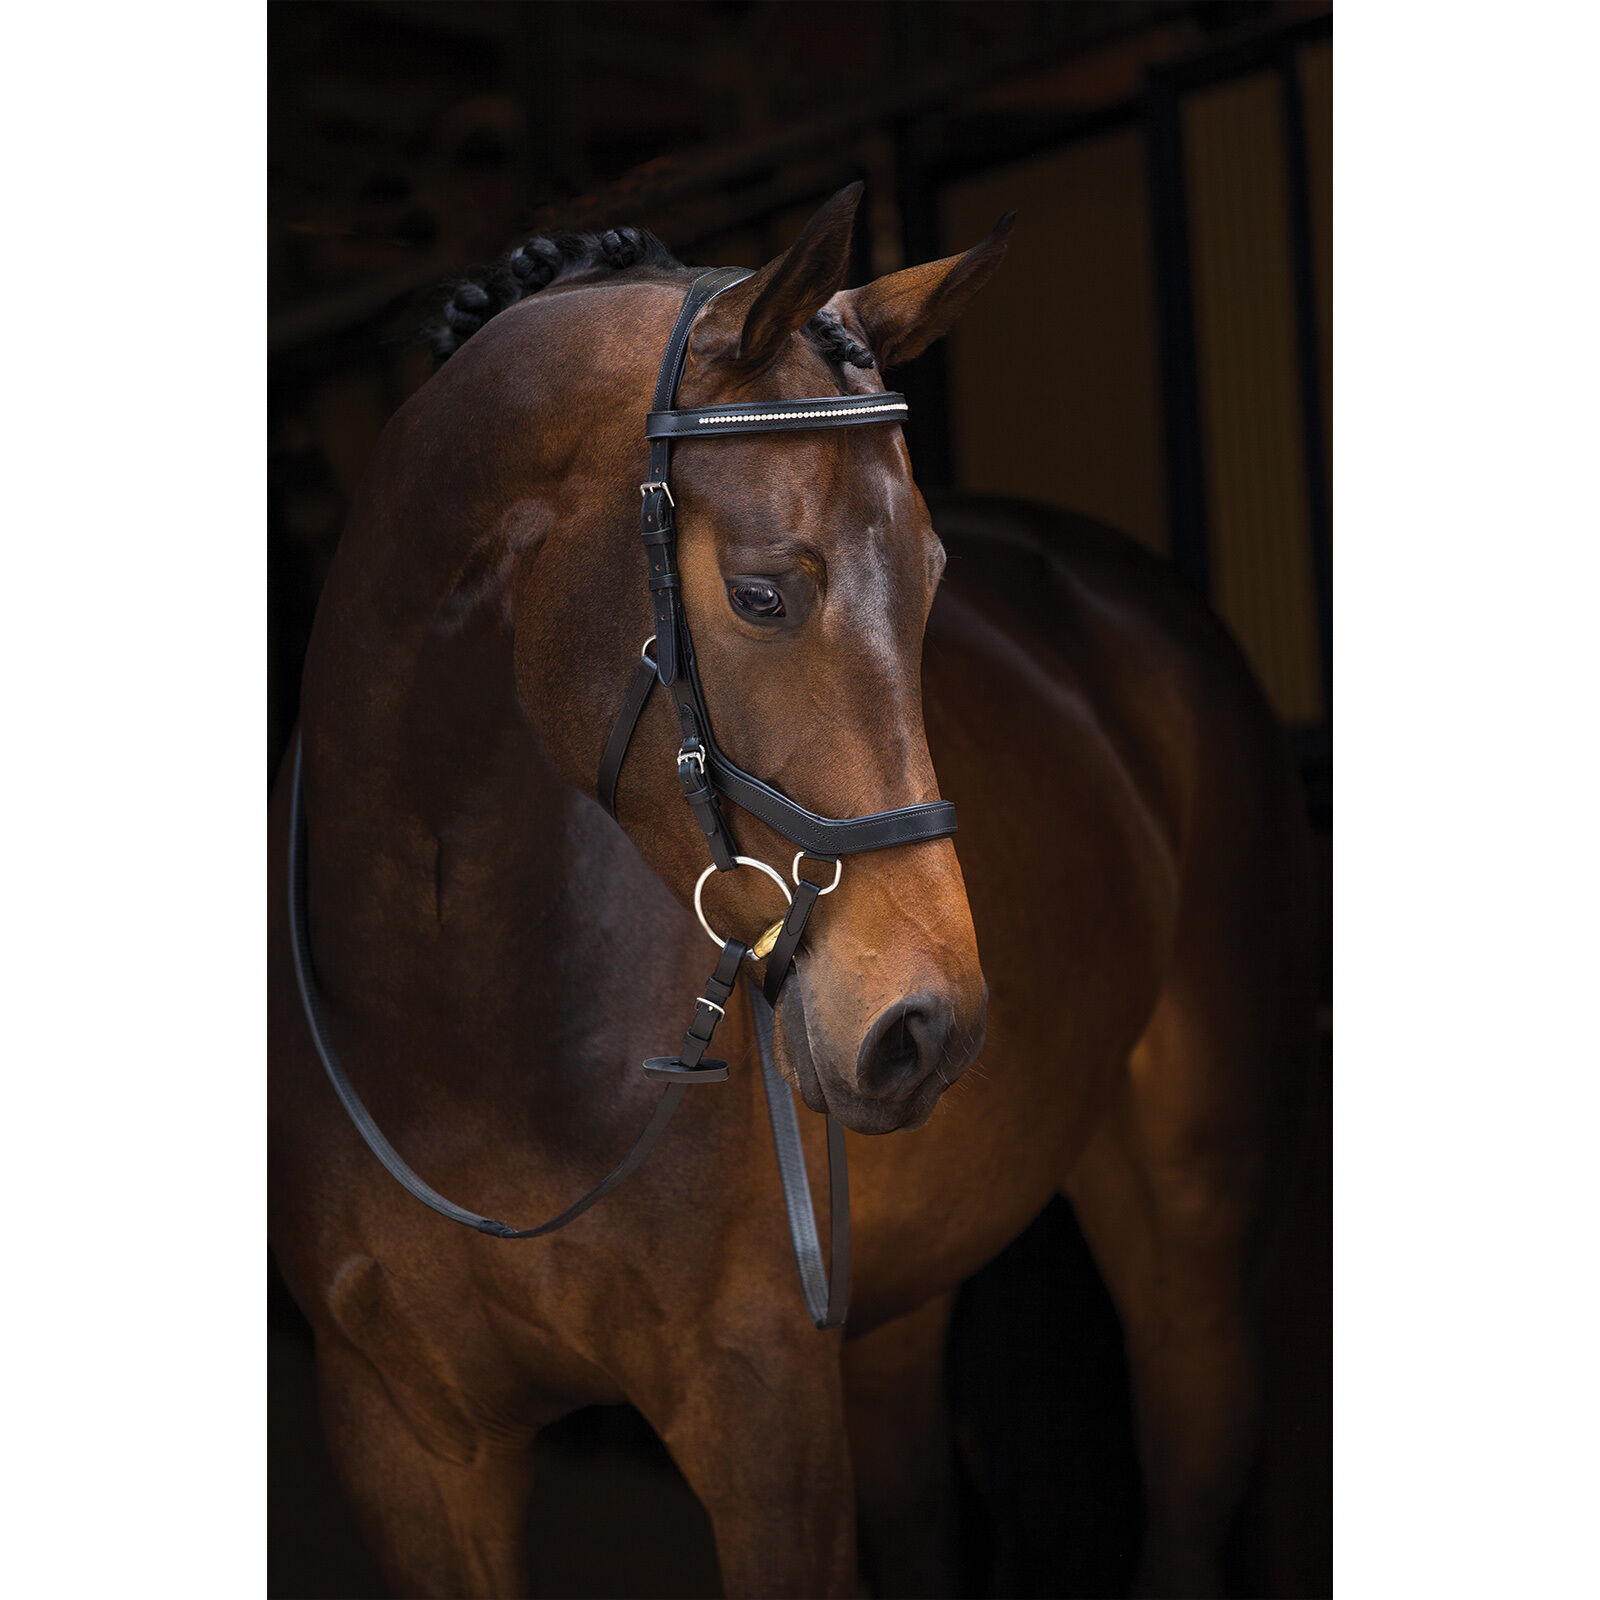 Rambo ® micklem ® diamante competition Bridle, Horseware